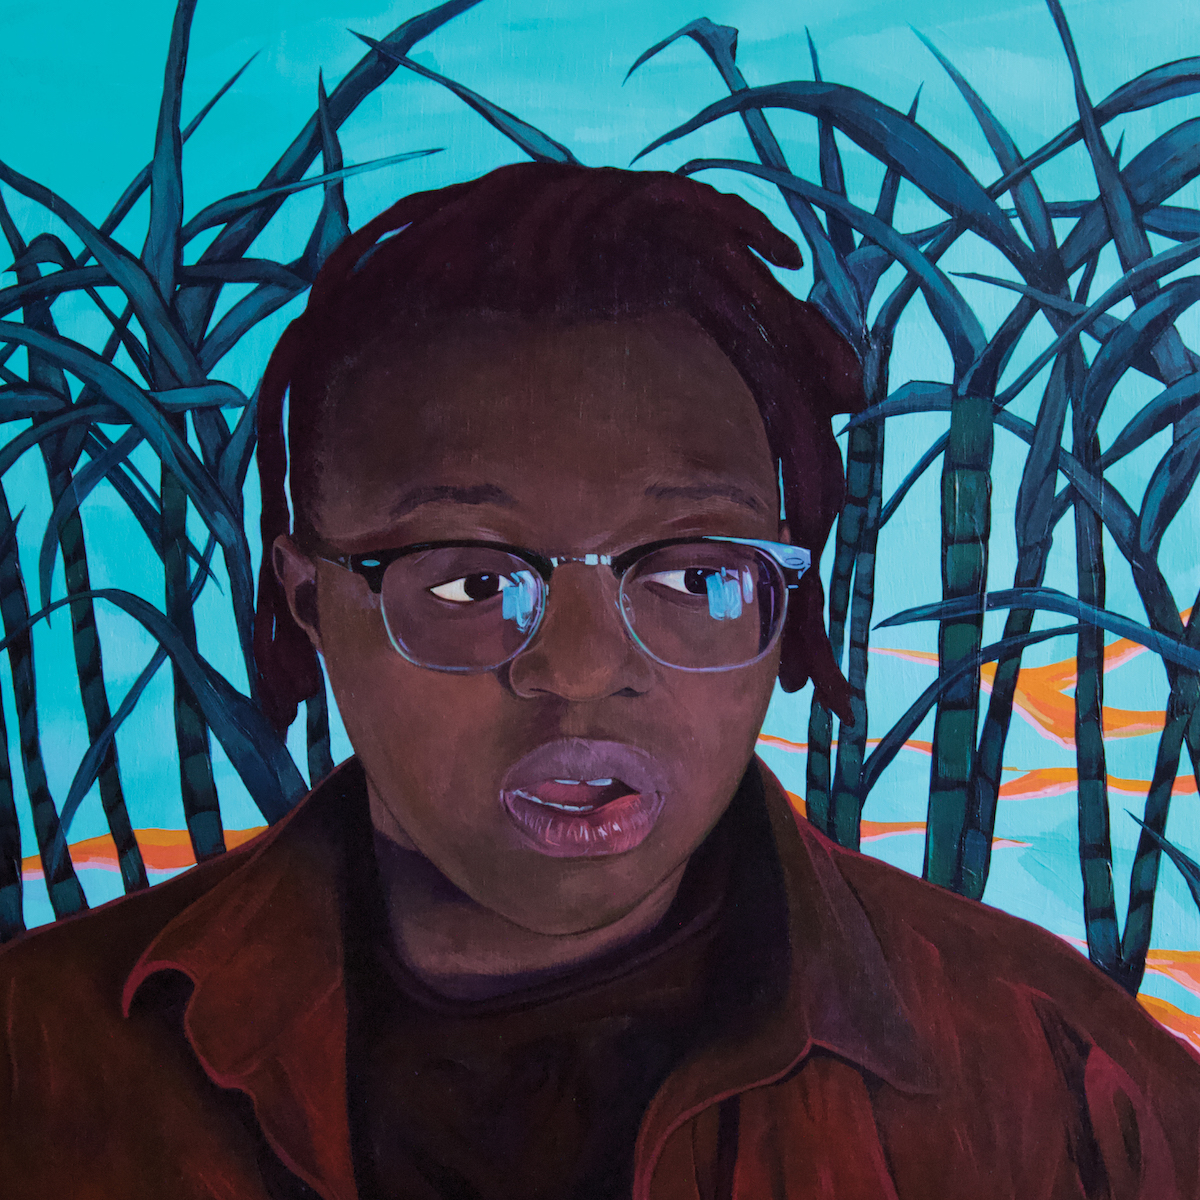 anjimile giver taker artwork cover Artist of the Month Anjimile on Overcoming Addiction, the Power of Ancestry, and Being Black and Trans Under Trump